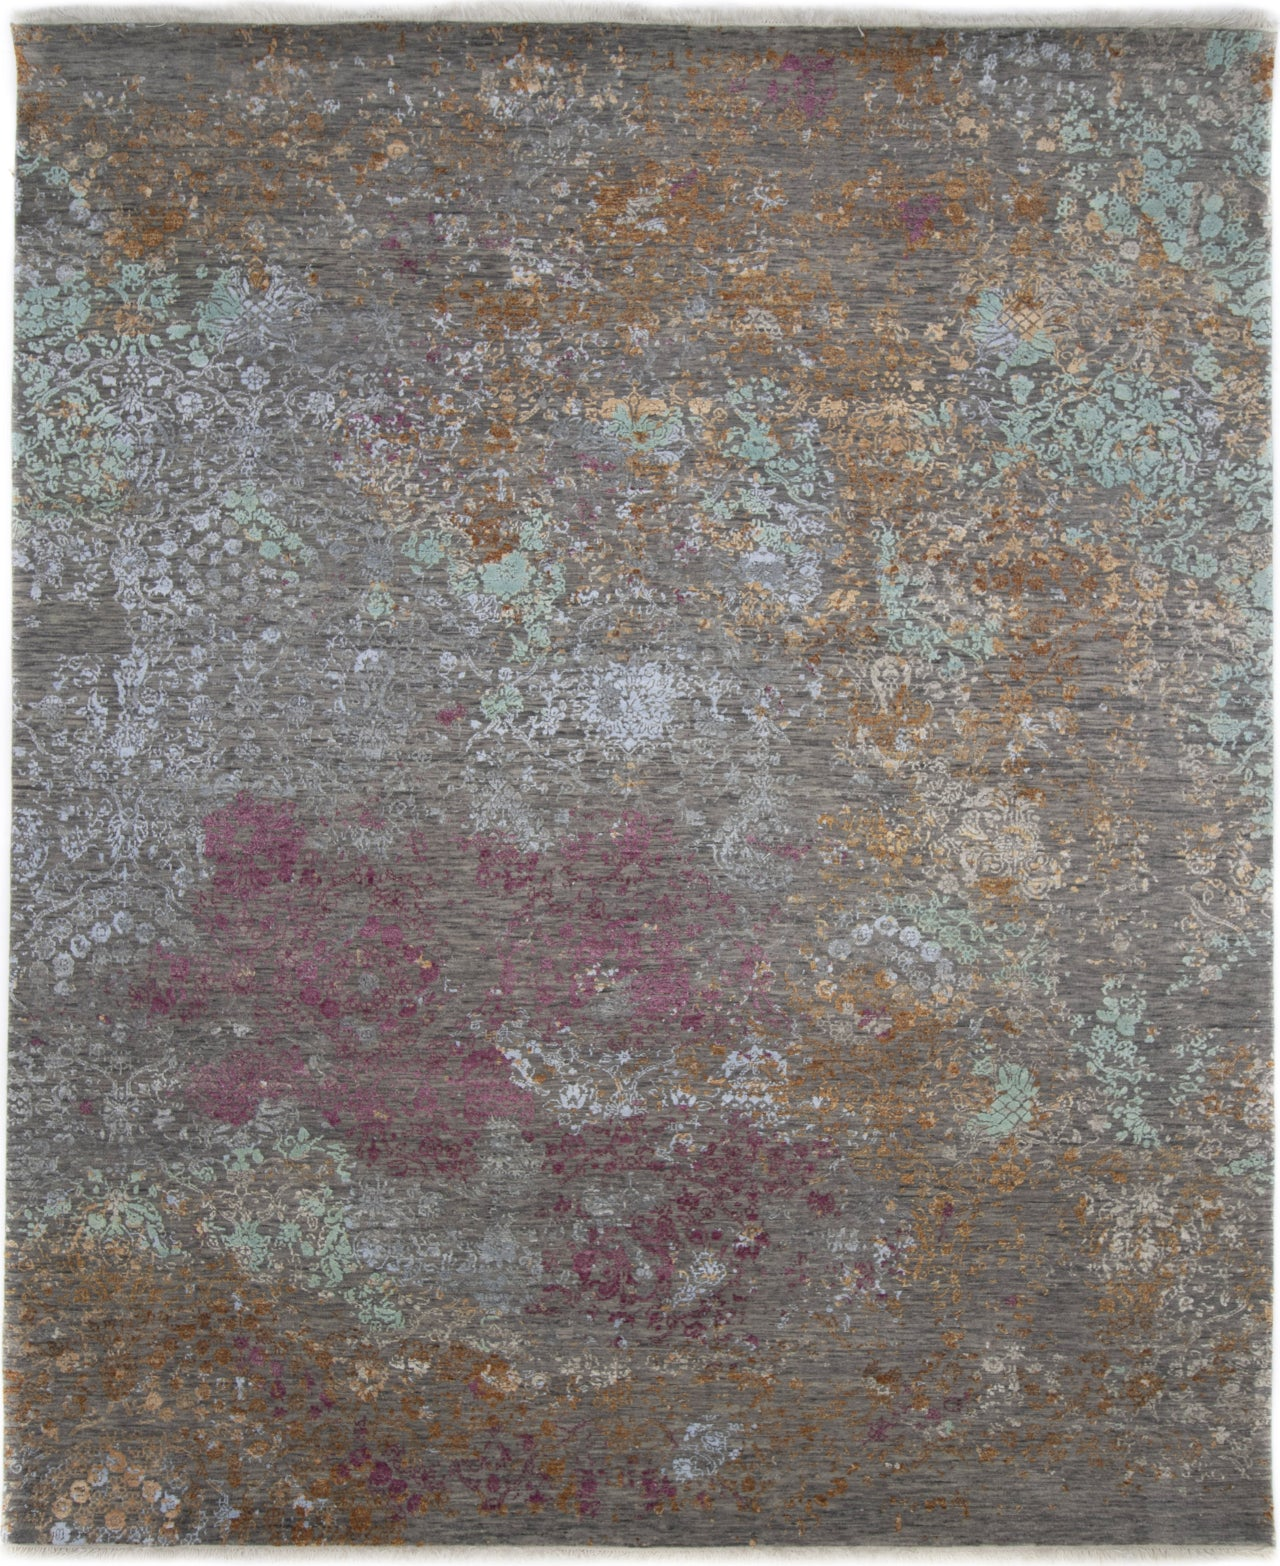 Solo Rugs Jankat M7967-22 Persimmon Area Rug main image